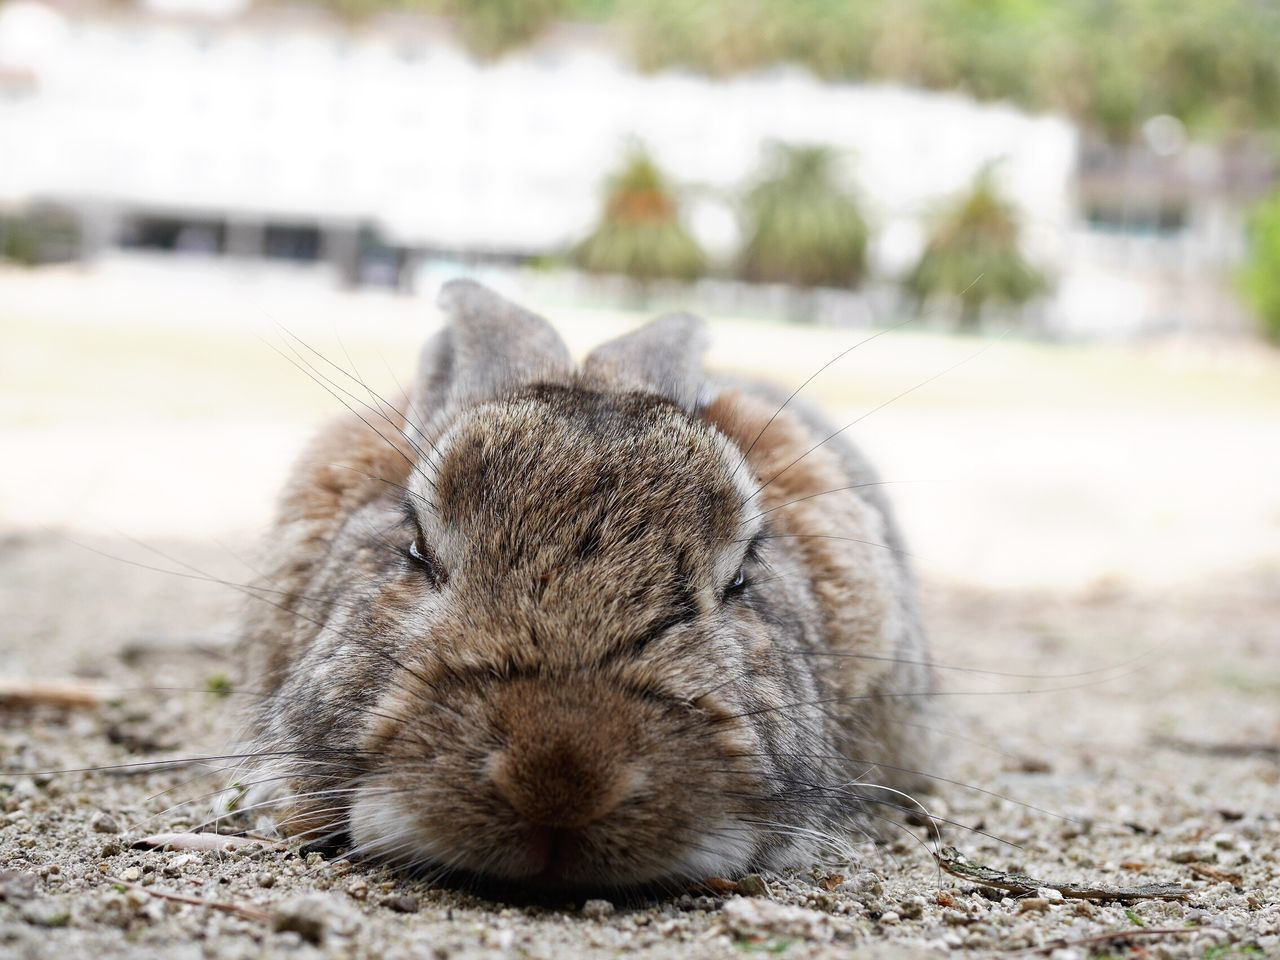 Nature Photography Nature Nature_collection Rabbit ❤️ Beauty In Nature Animal Rabbits Rabbits 🐇 Pretty Animal Wildlife Animal_collection Animal Photography Animal Themes Rabbit Animals Animals In The Wild Sleep Sleeping Sleepy